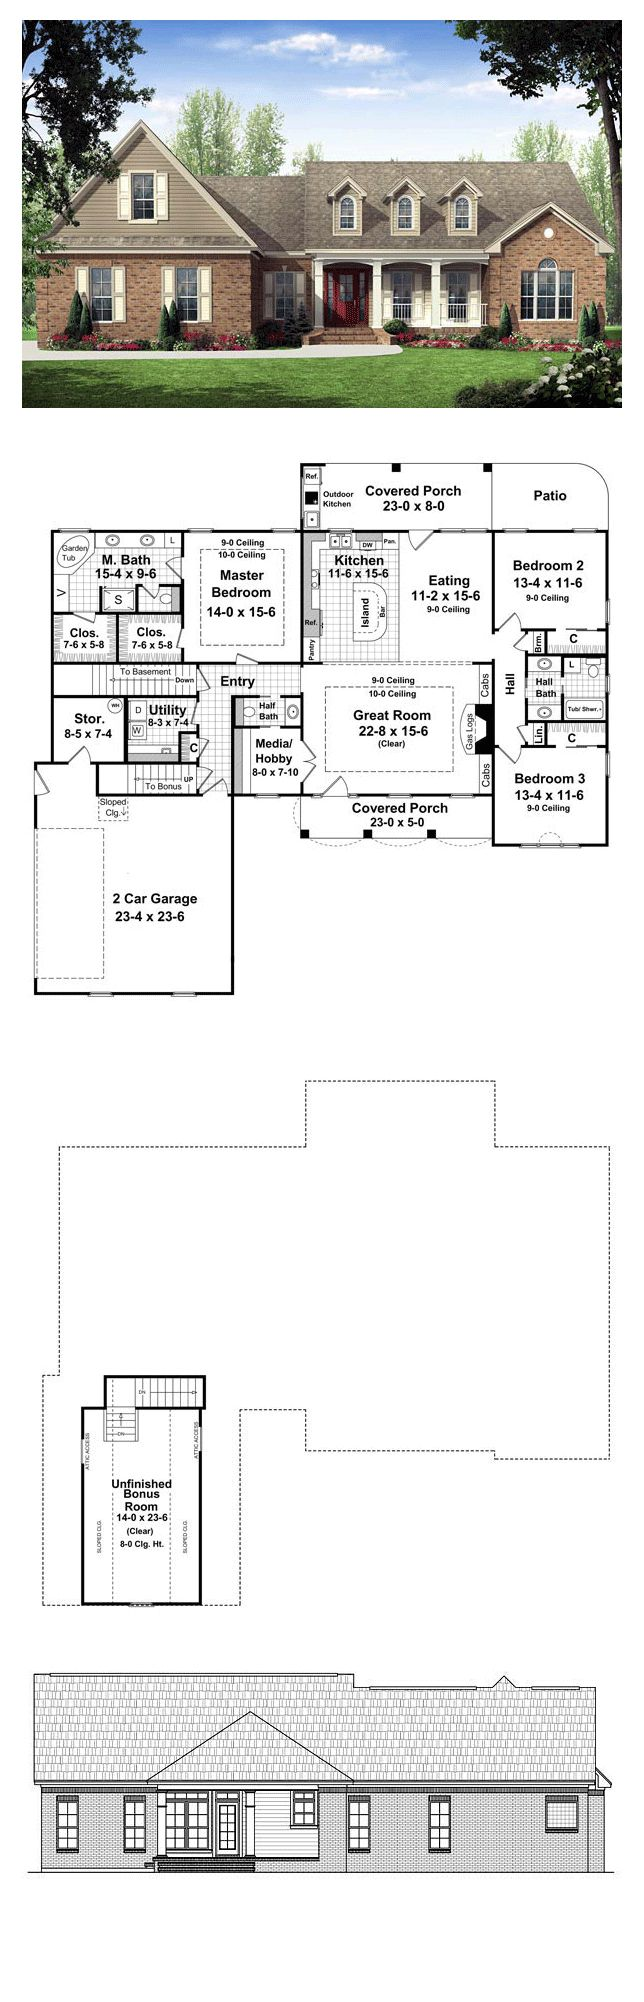 25 best ideas about ranch house exteriors on pinterest for Rear master bedroom house plans